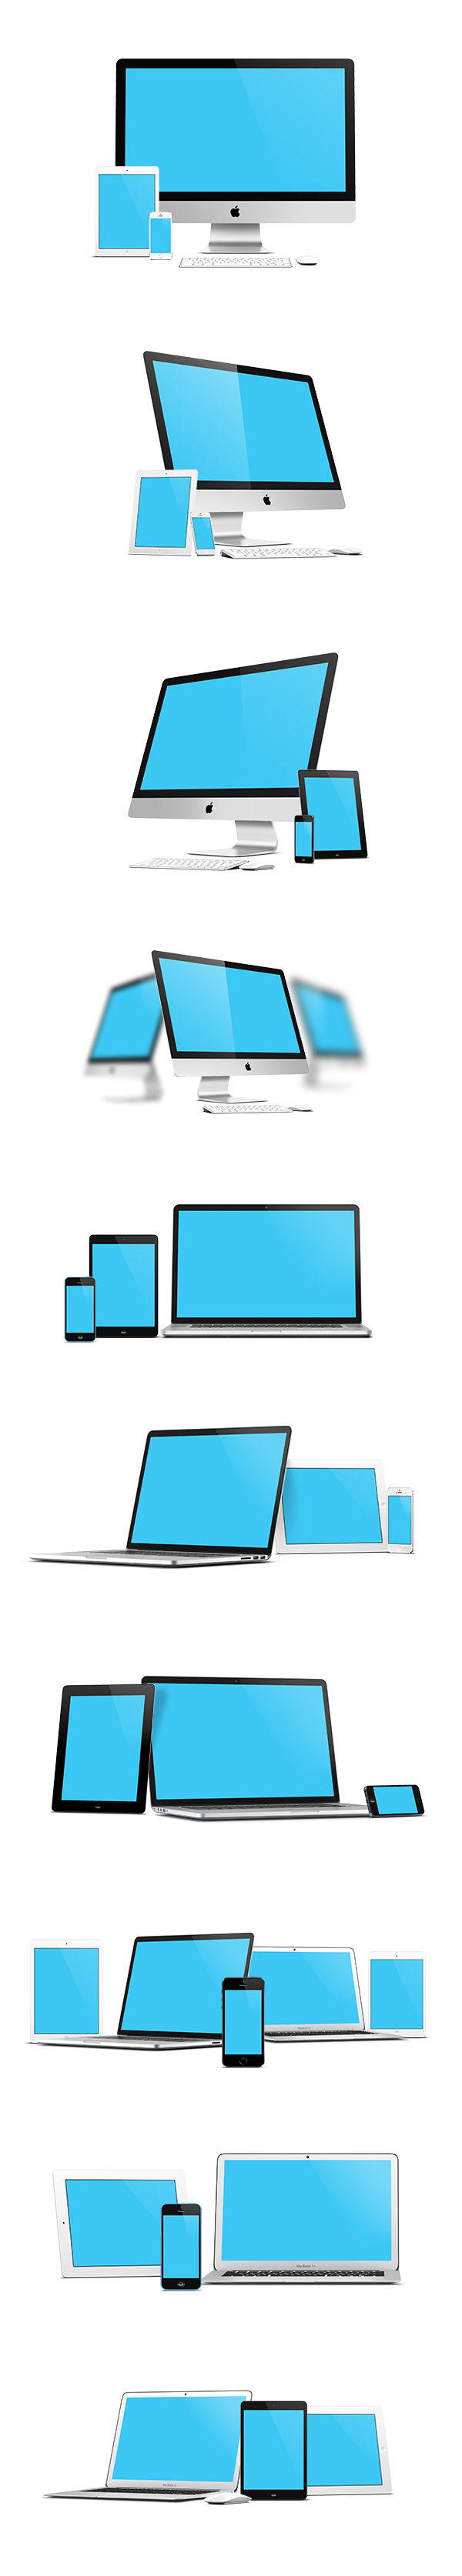 Mockup apple devices